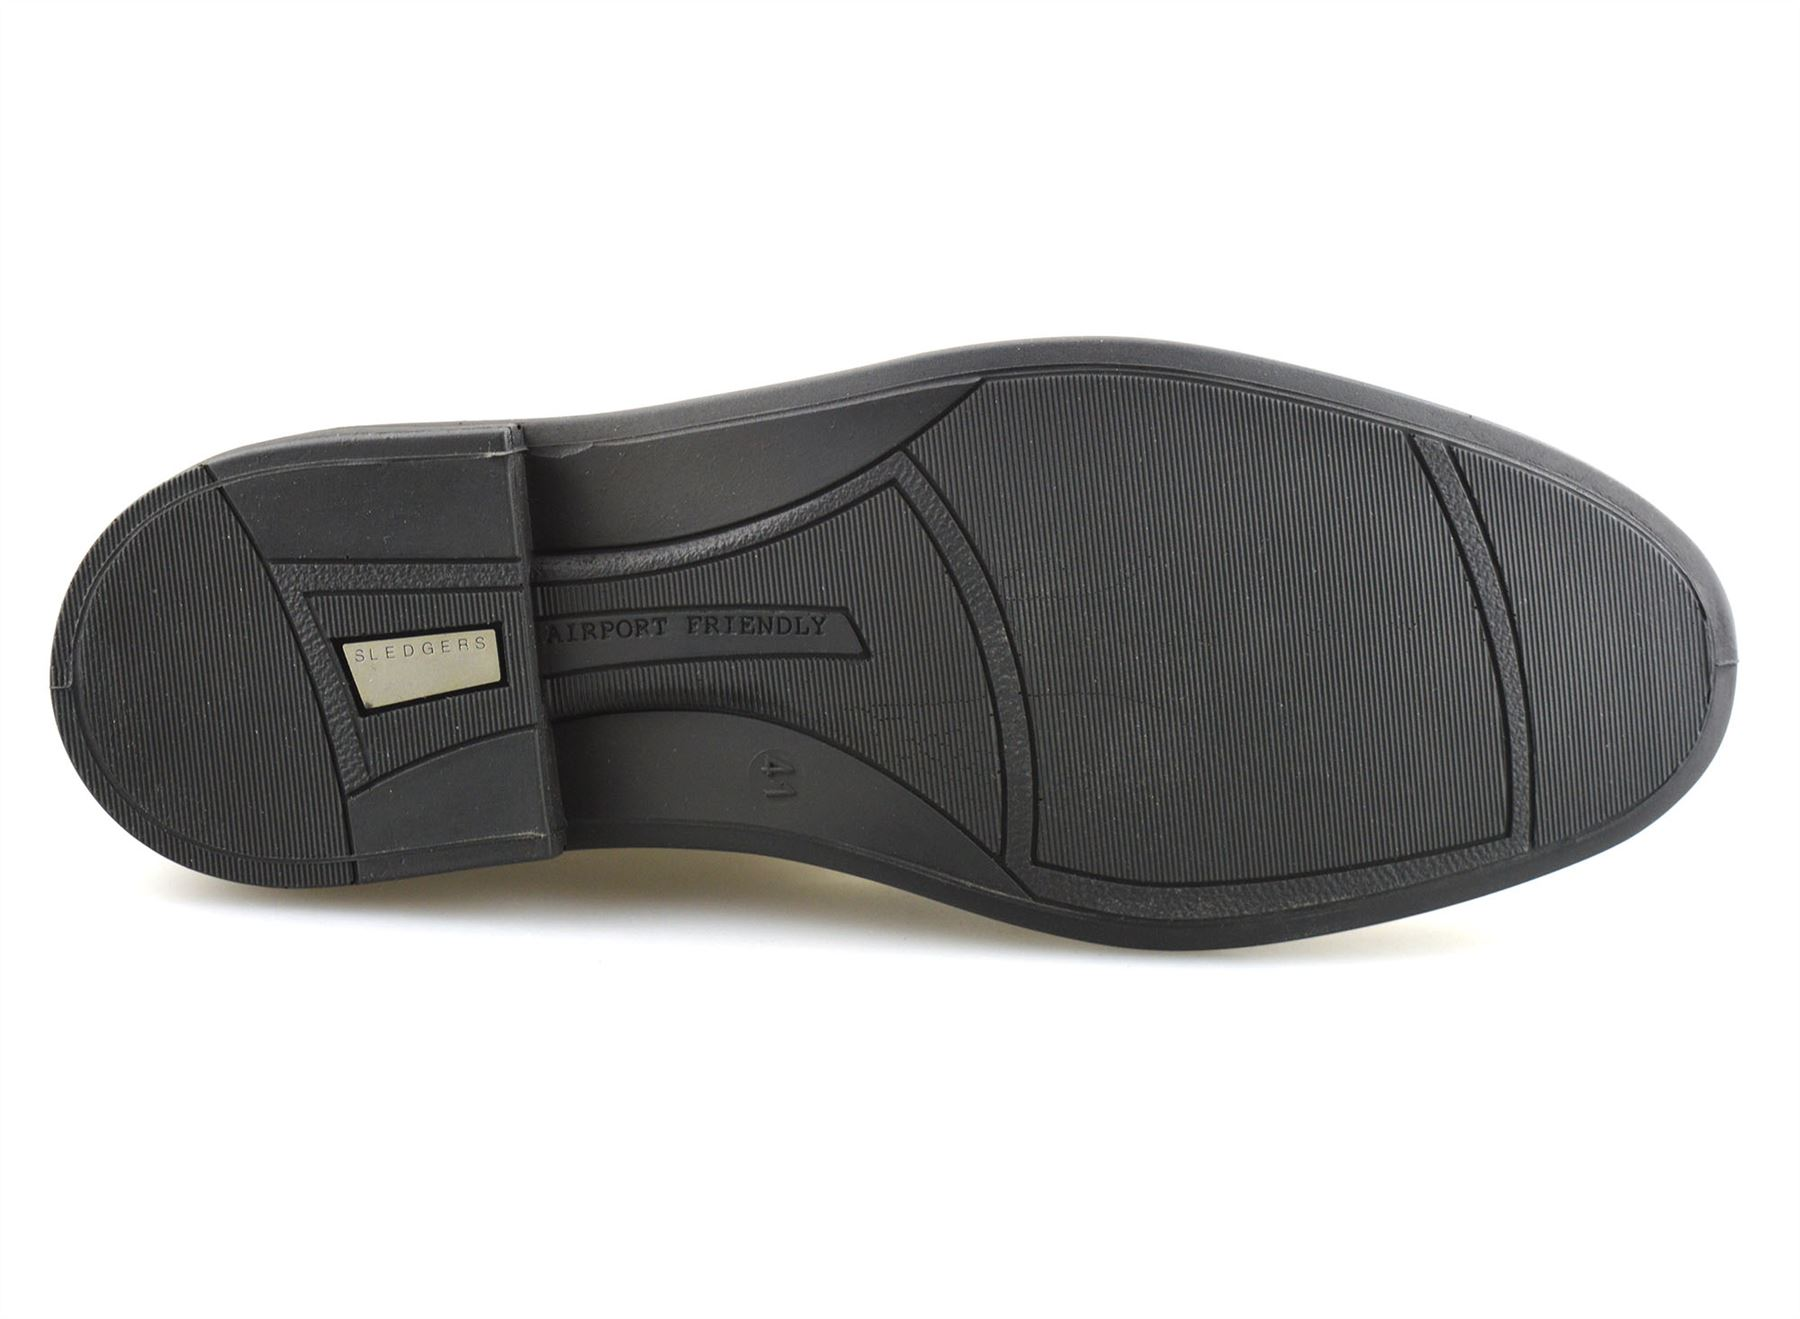 Mens-Leather-Slip-On-Casual-Smart-Designer-Mocassin-Work-Loafers-Shoes-Size thumbnail 12